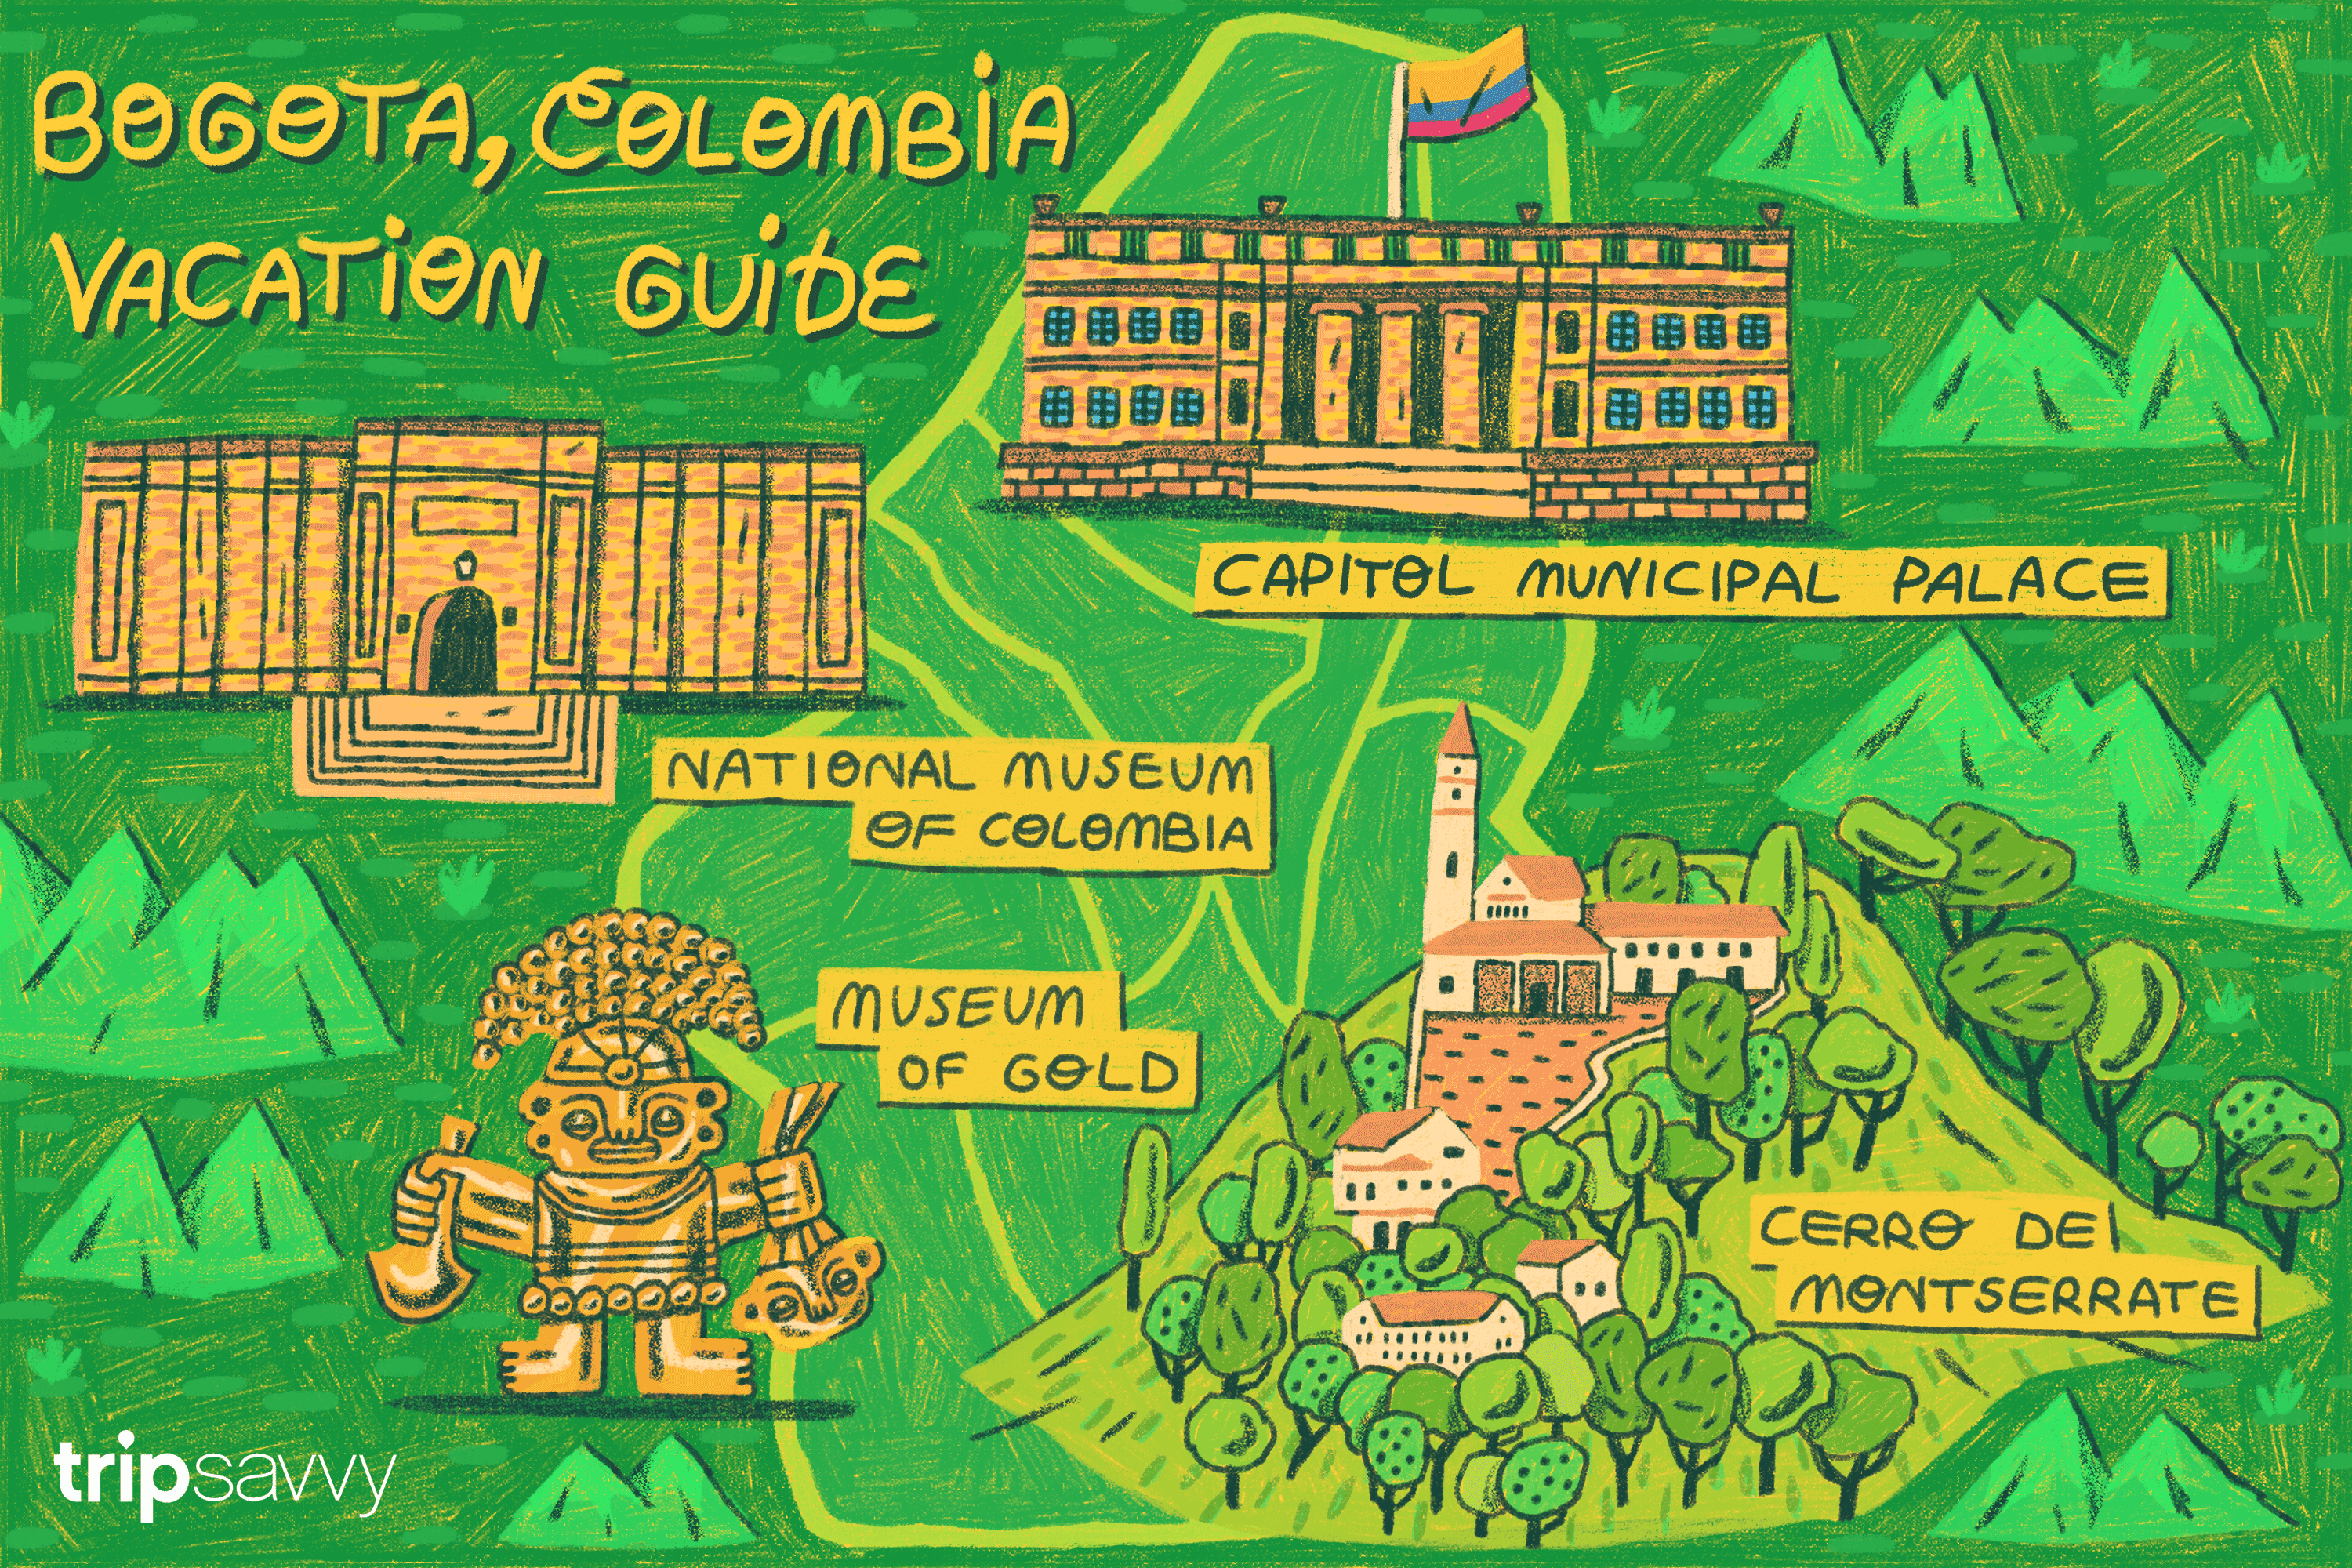 guide to Bogota, Colombia